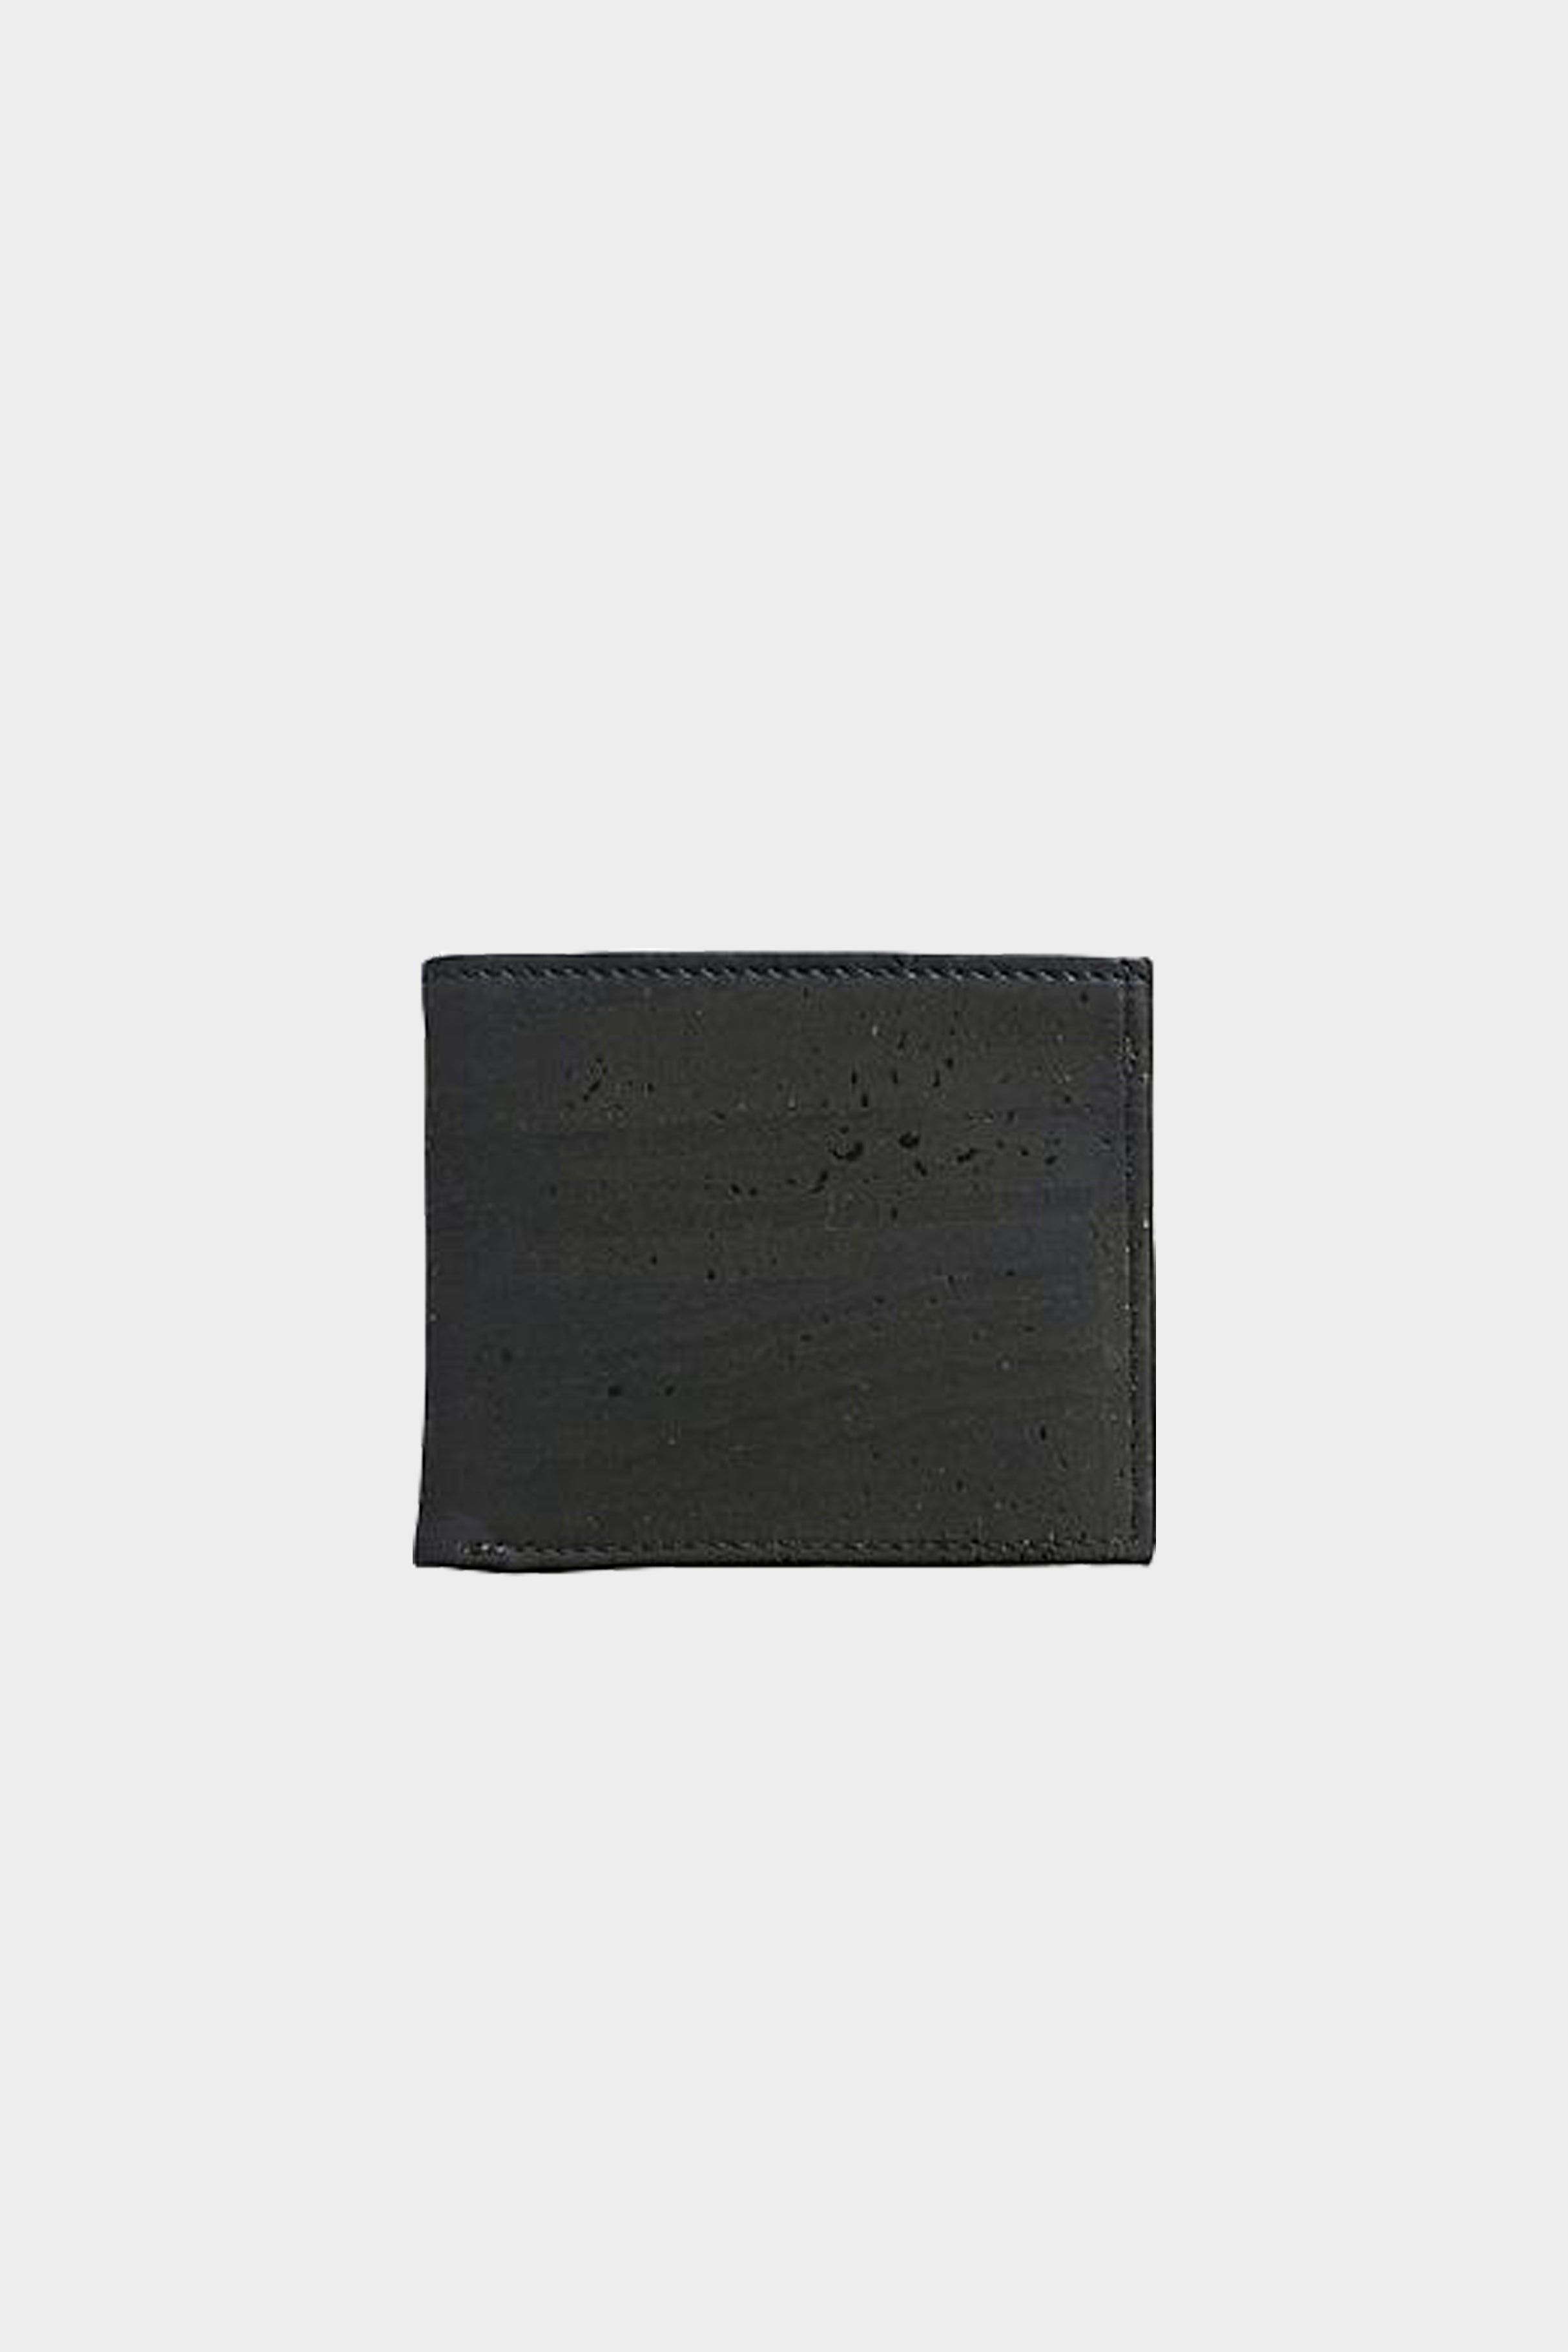 The Classic Vegan Leather Black Wallet